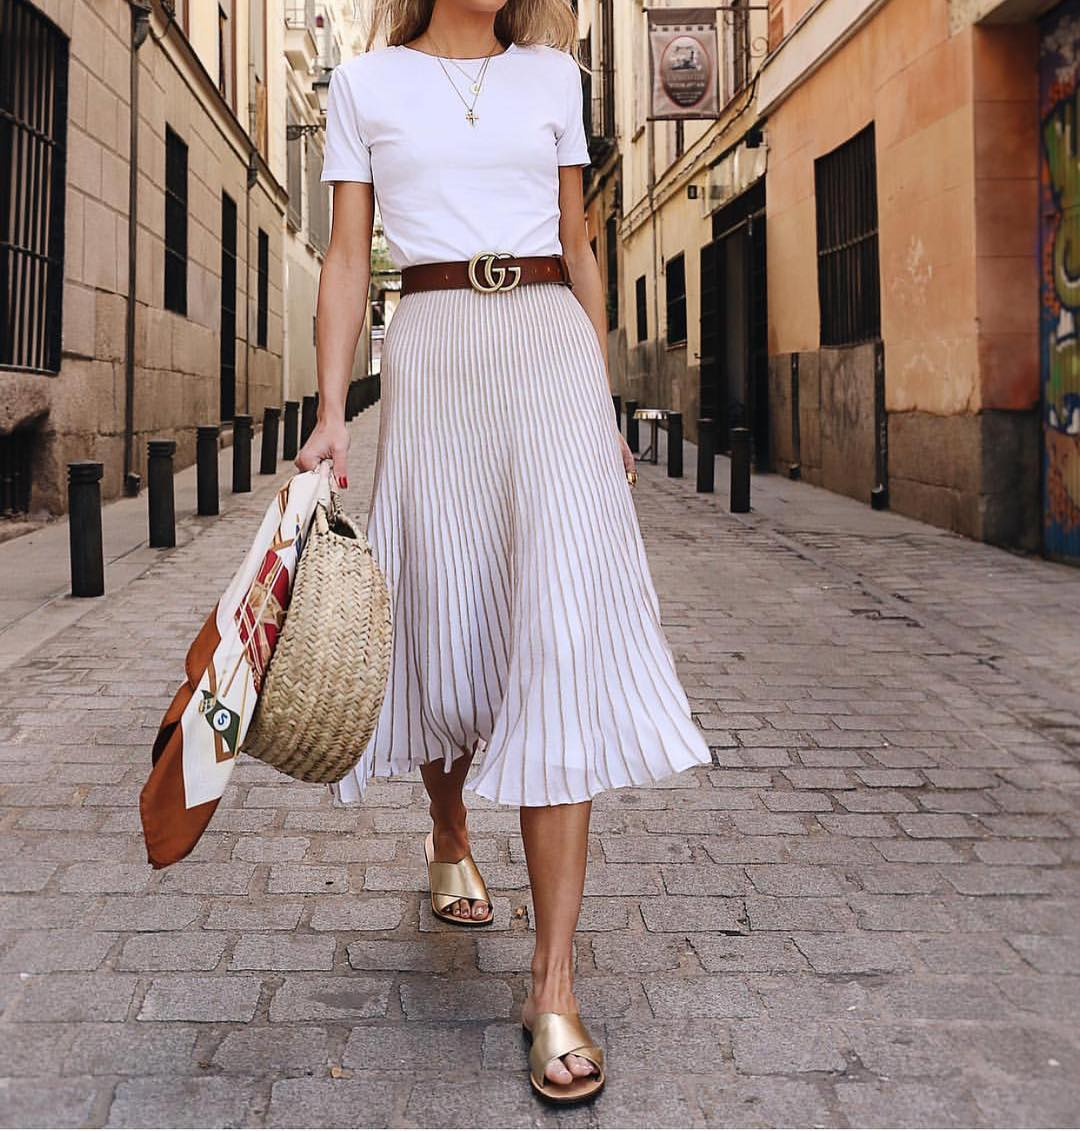 How To Make Knife-Pleated Midi Skirt Look Sweet And Sassy This Summer 2020